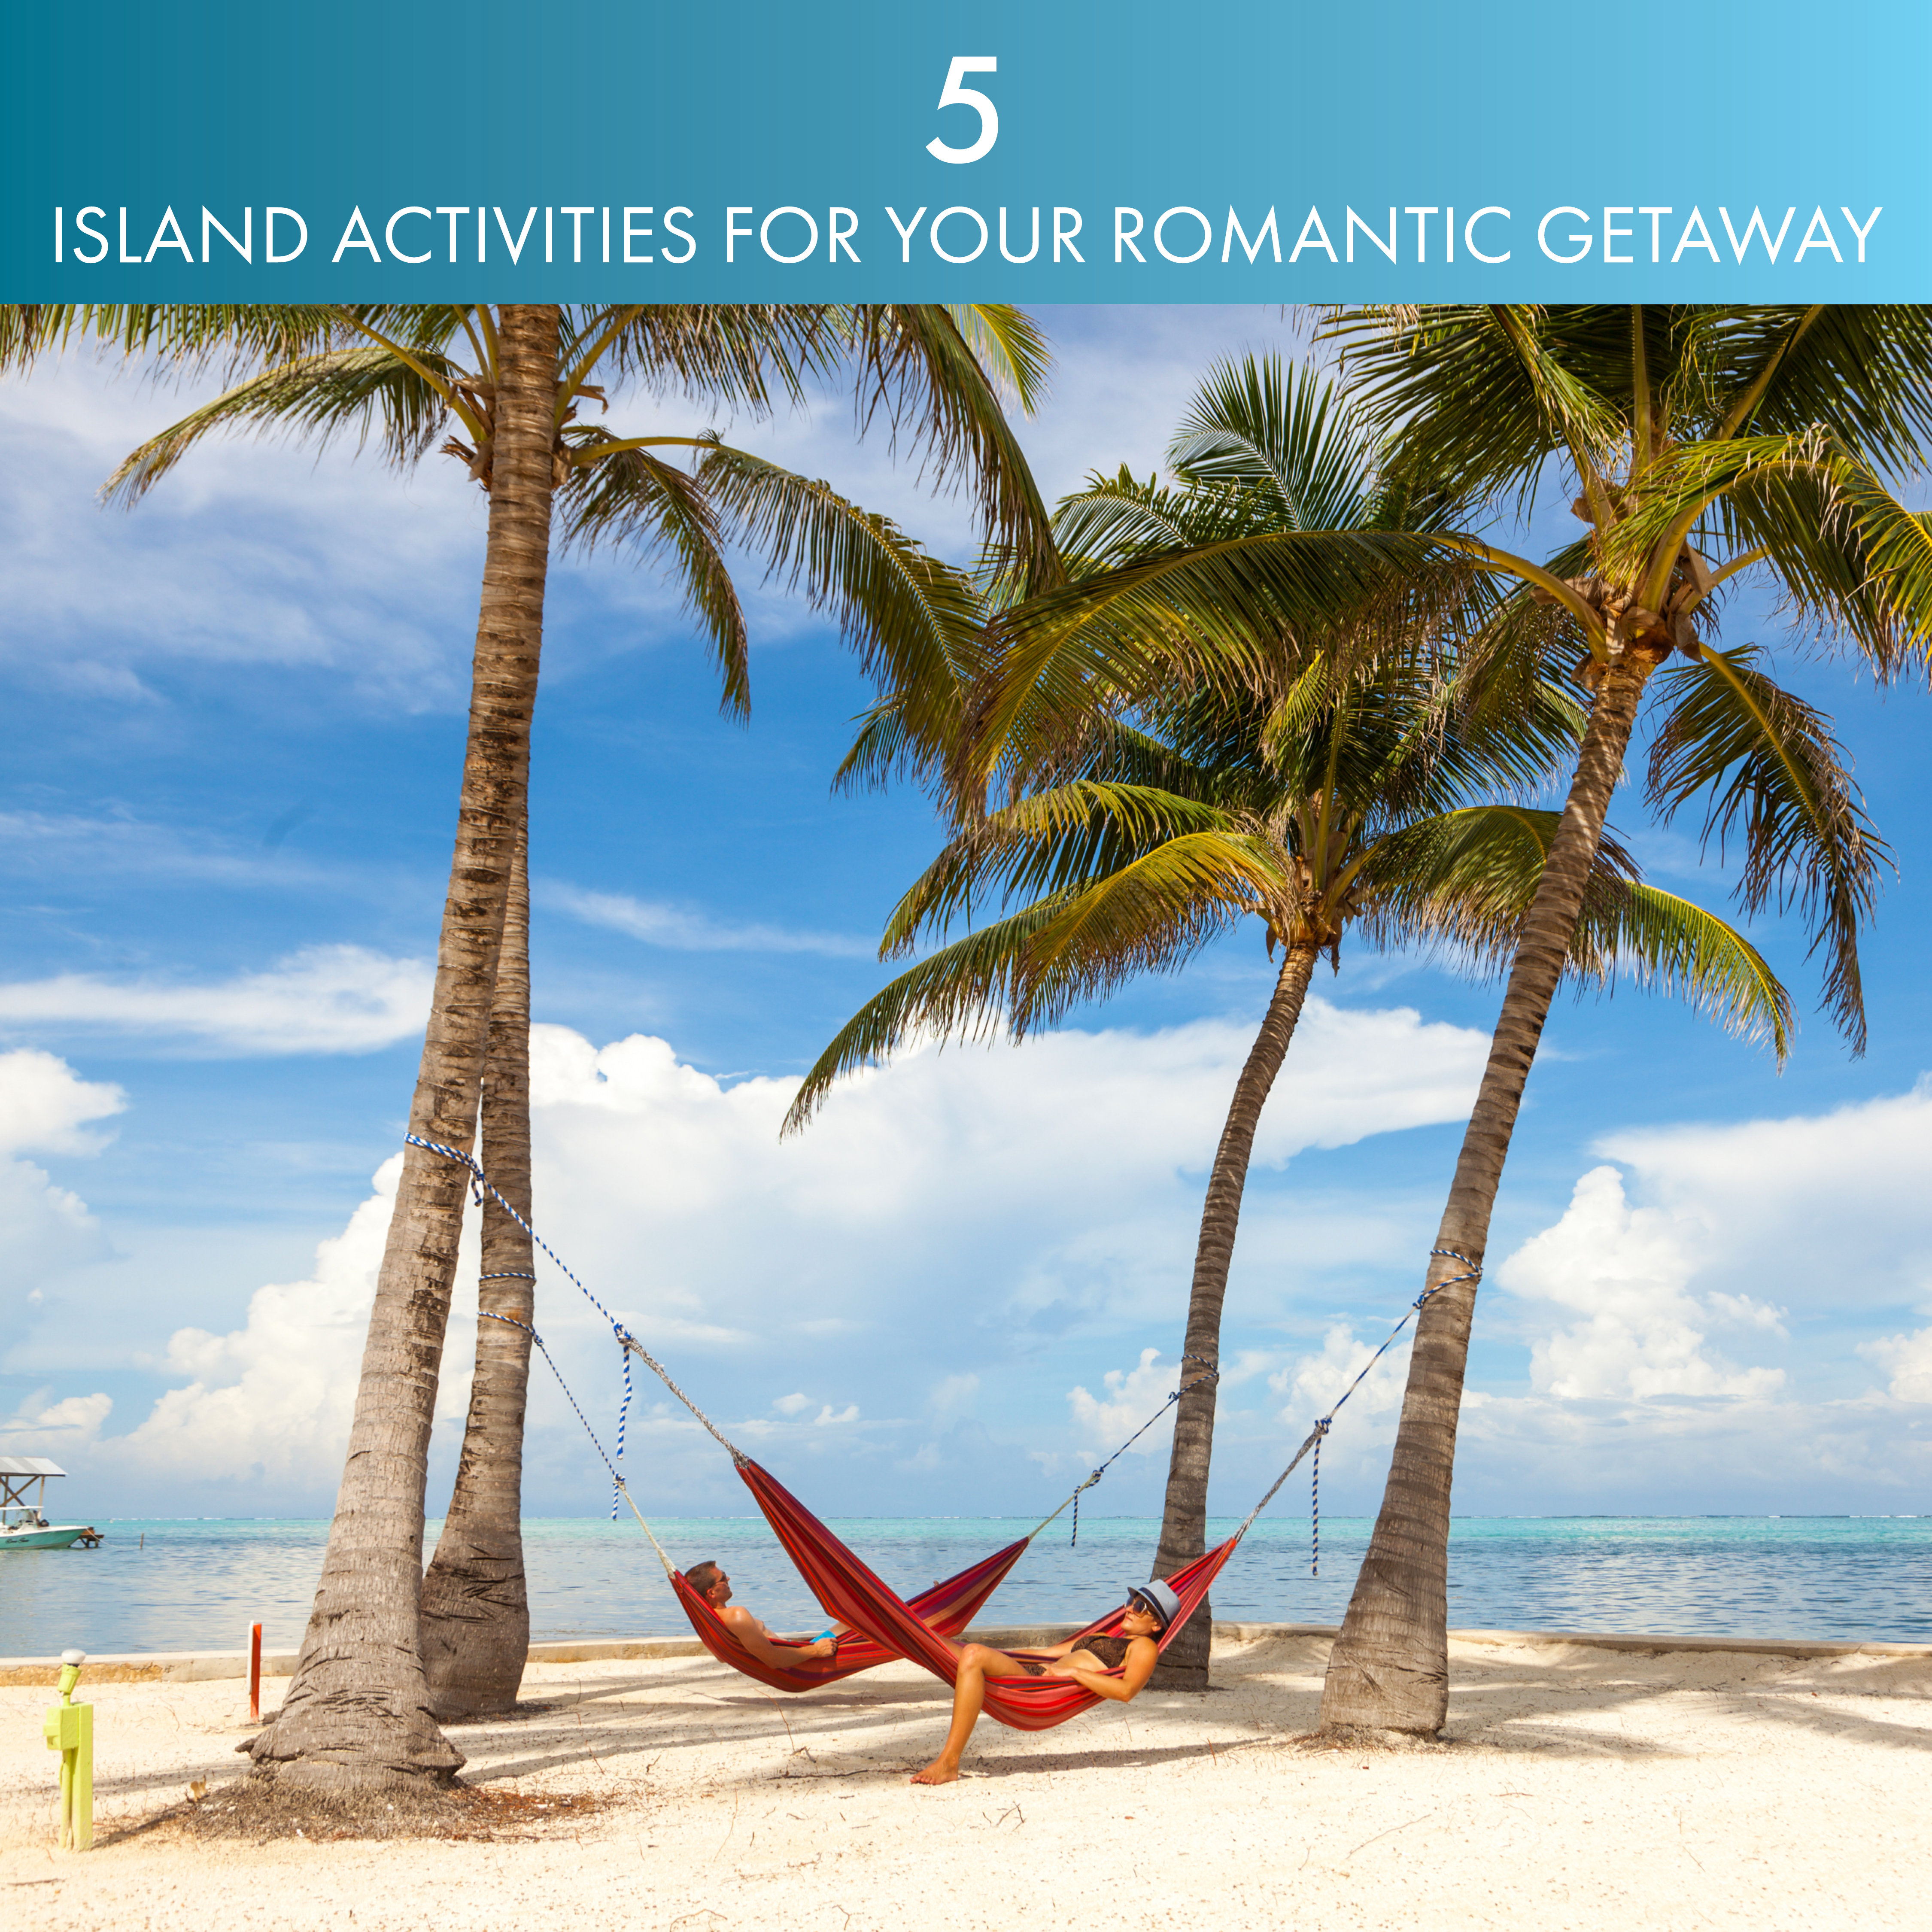 5 Island Romantic actives